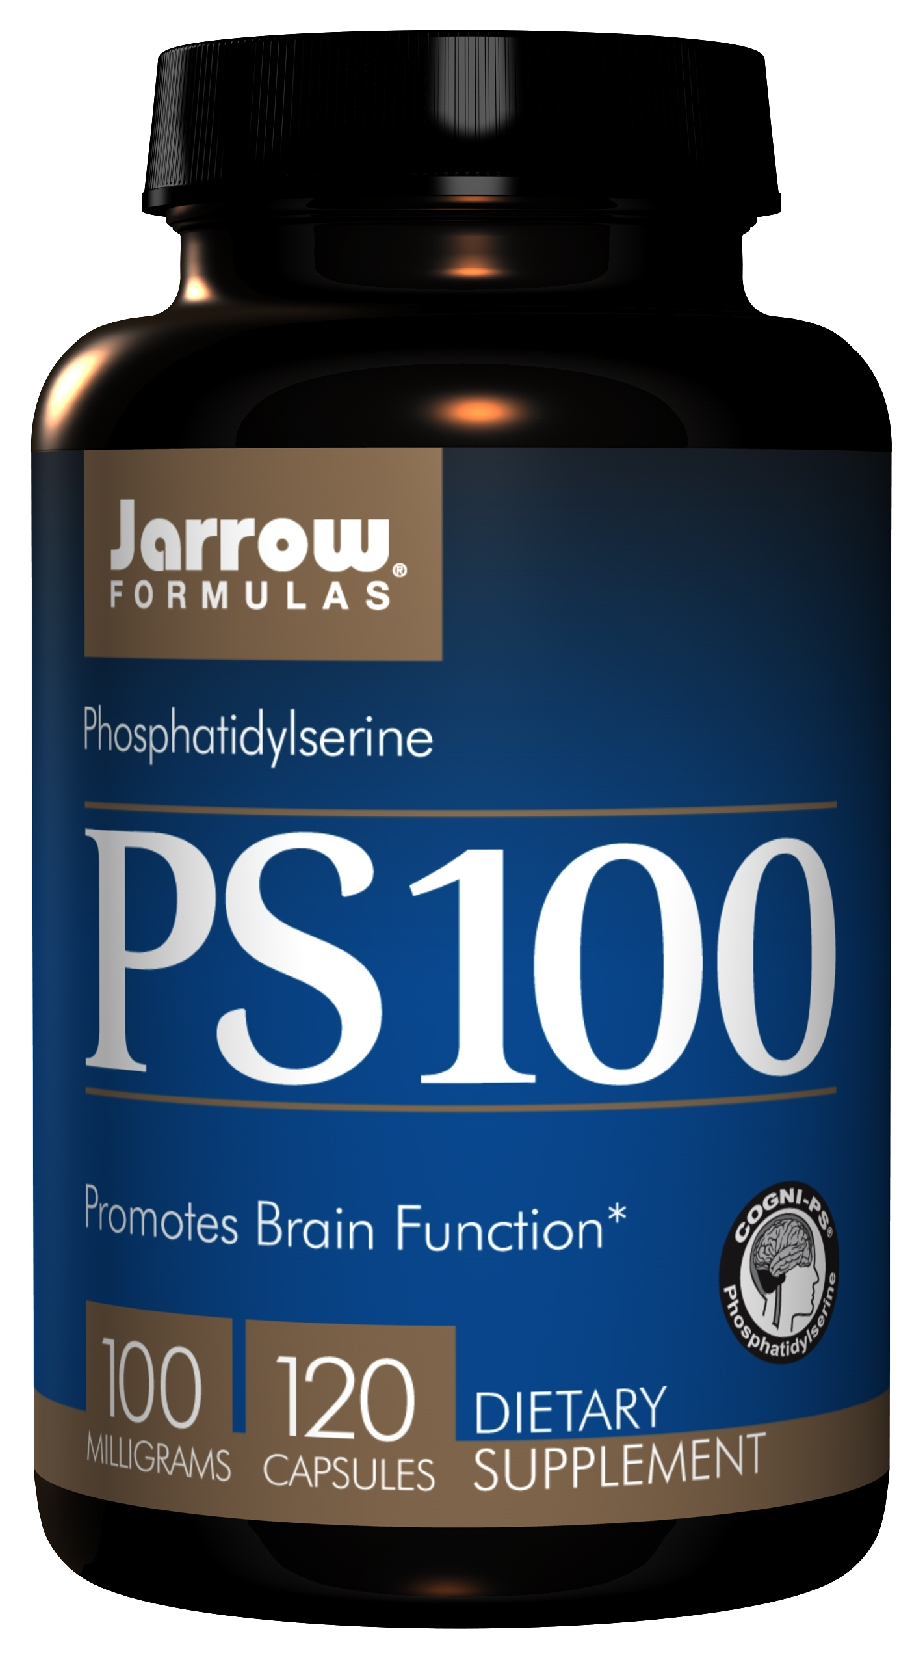 PS 100 Phosphatidylserine 100 mg 120 caps by Jarrow Formulas